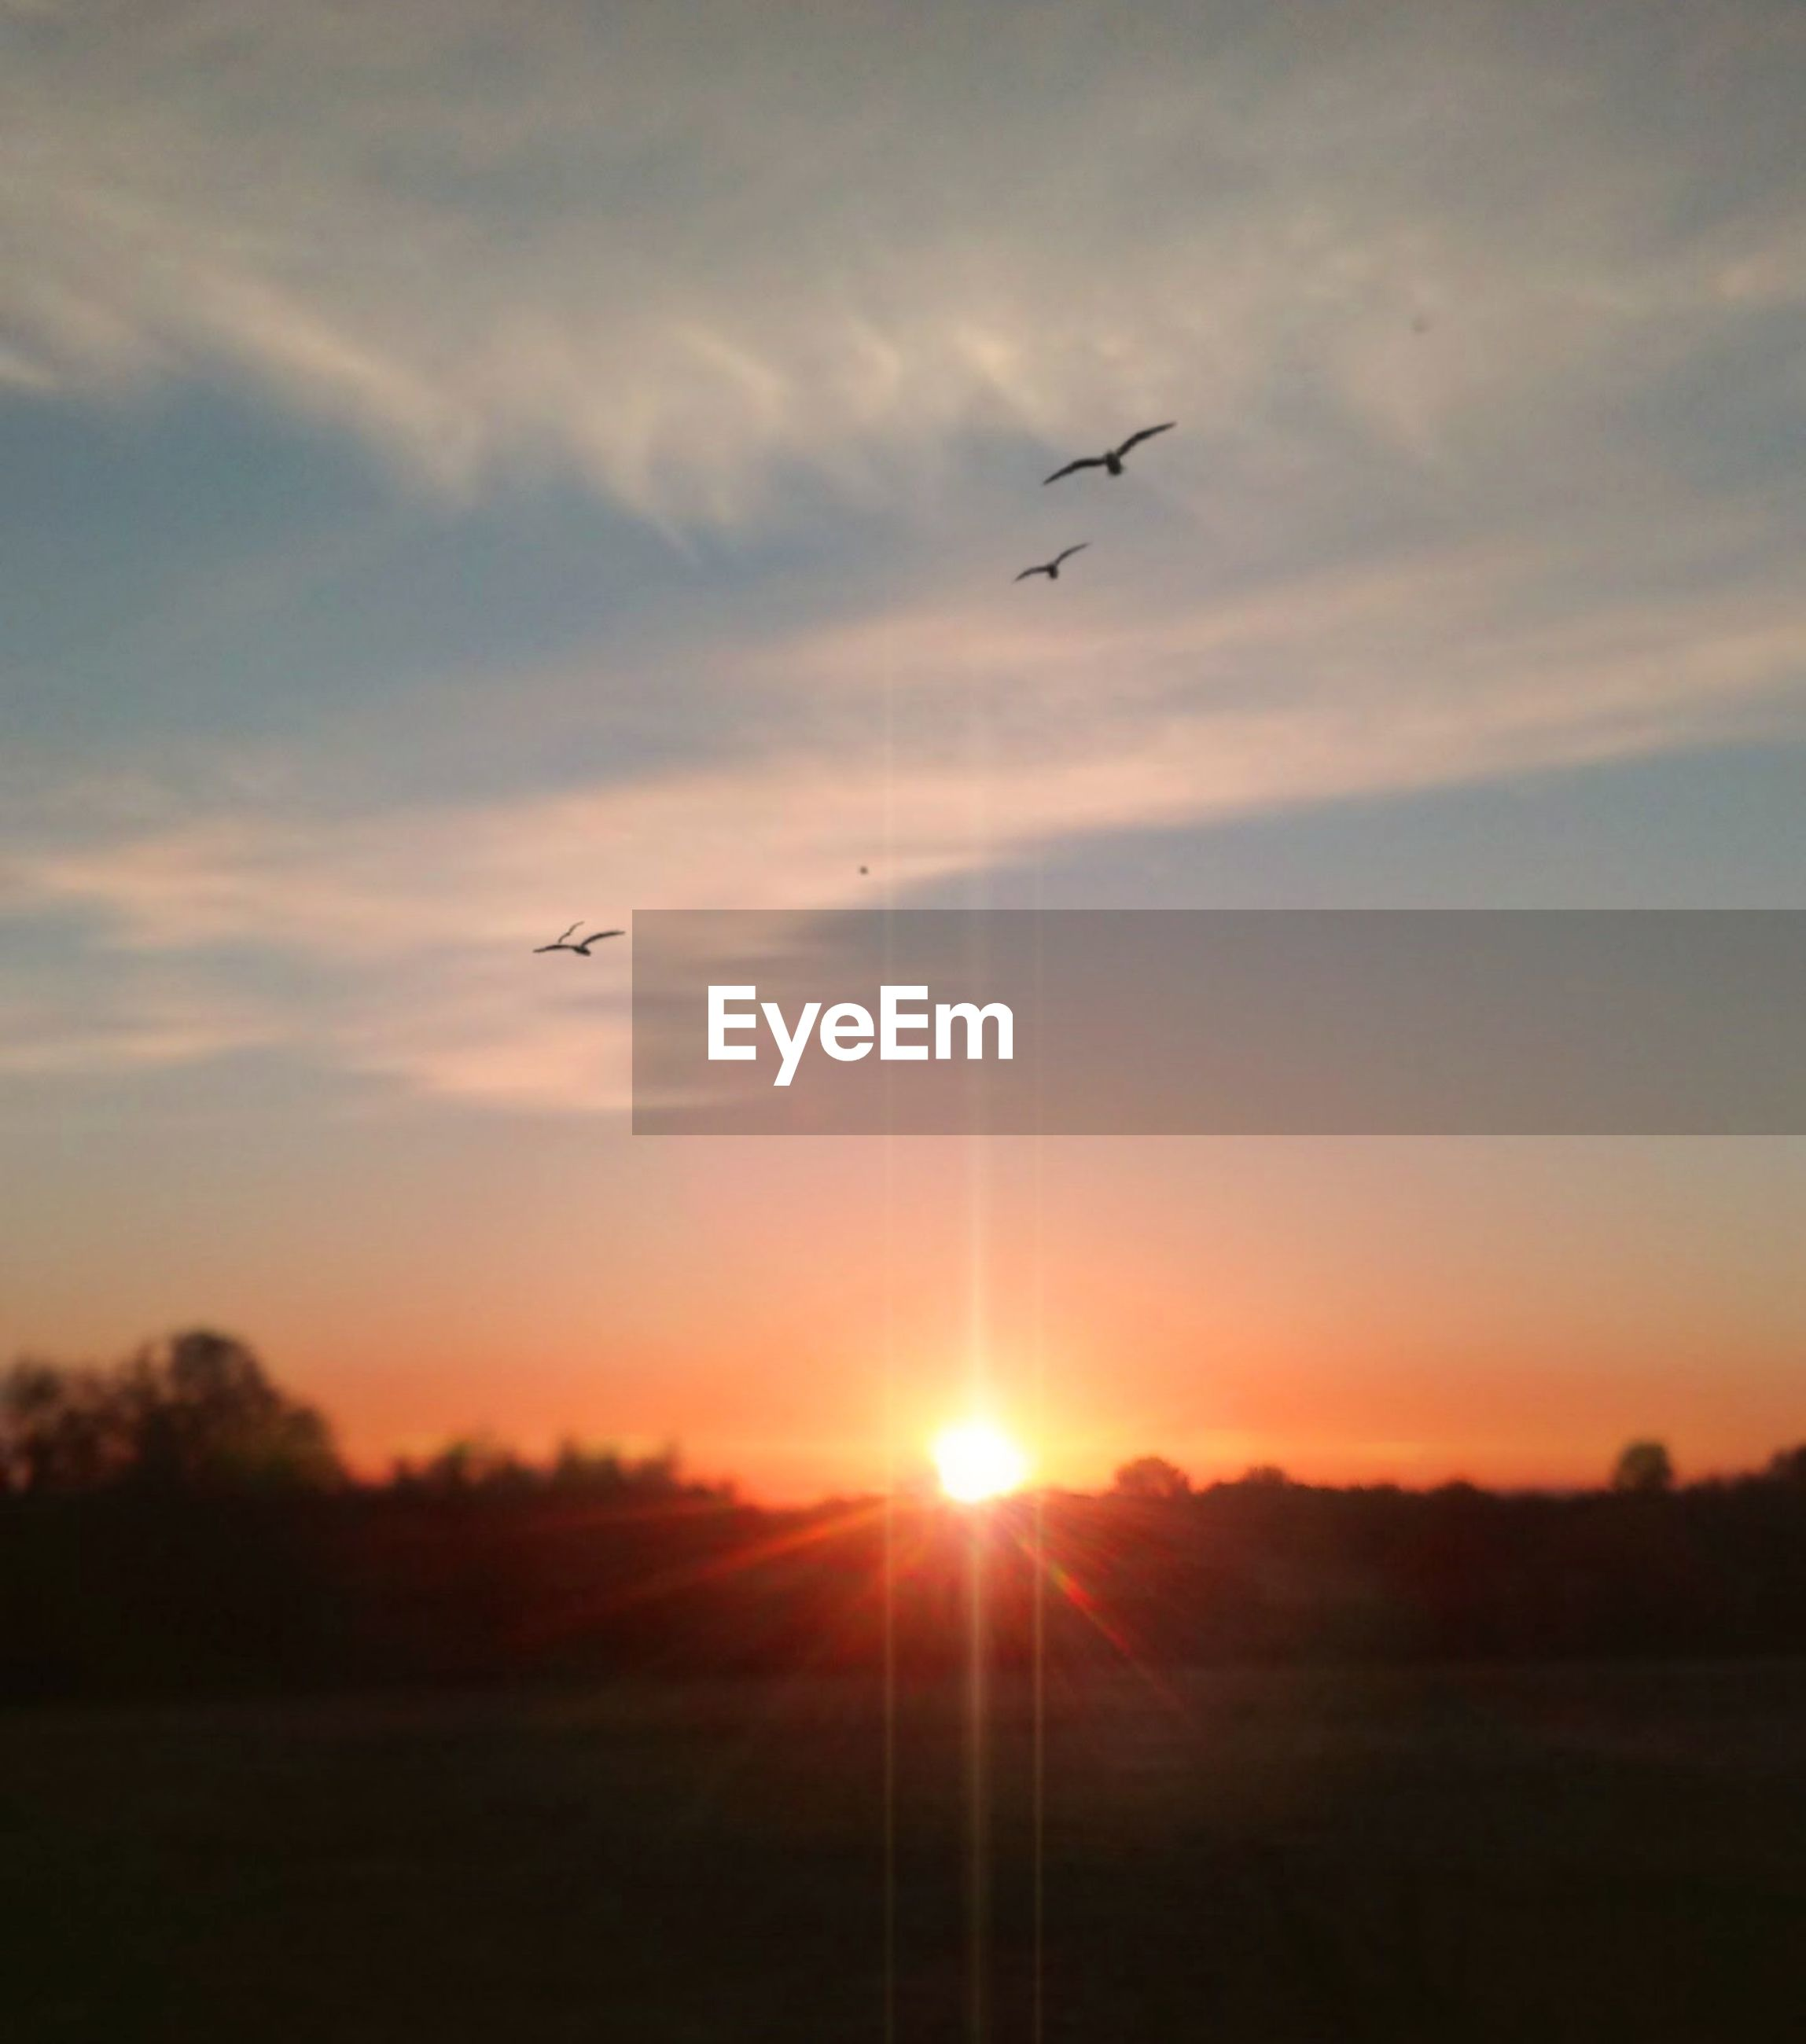 sunset, sky, beauty in nature, cloud - sky, sun, flying, scenics - nature, bird, animal, silhouette, tranquil scene, animal themes, orange color, tranquility, vertebrate, nature, sunlight, no people, animals in the wild, air vehicle, outdoors, lens flare